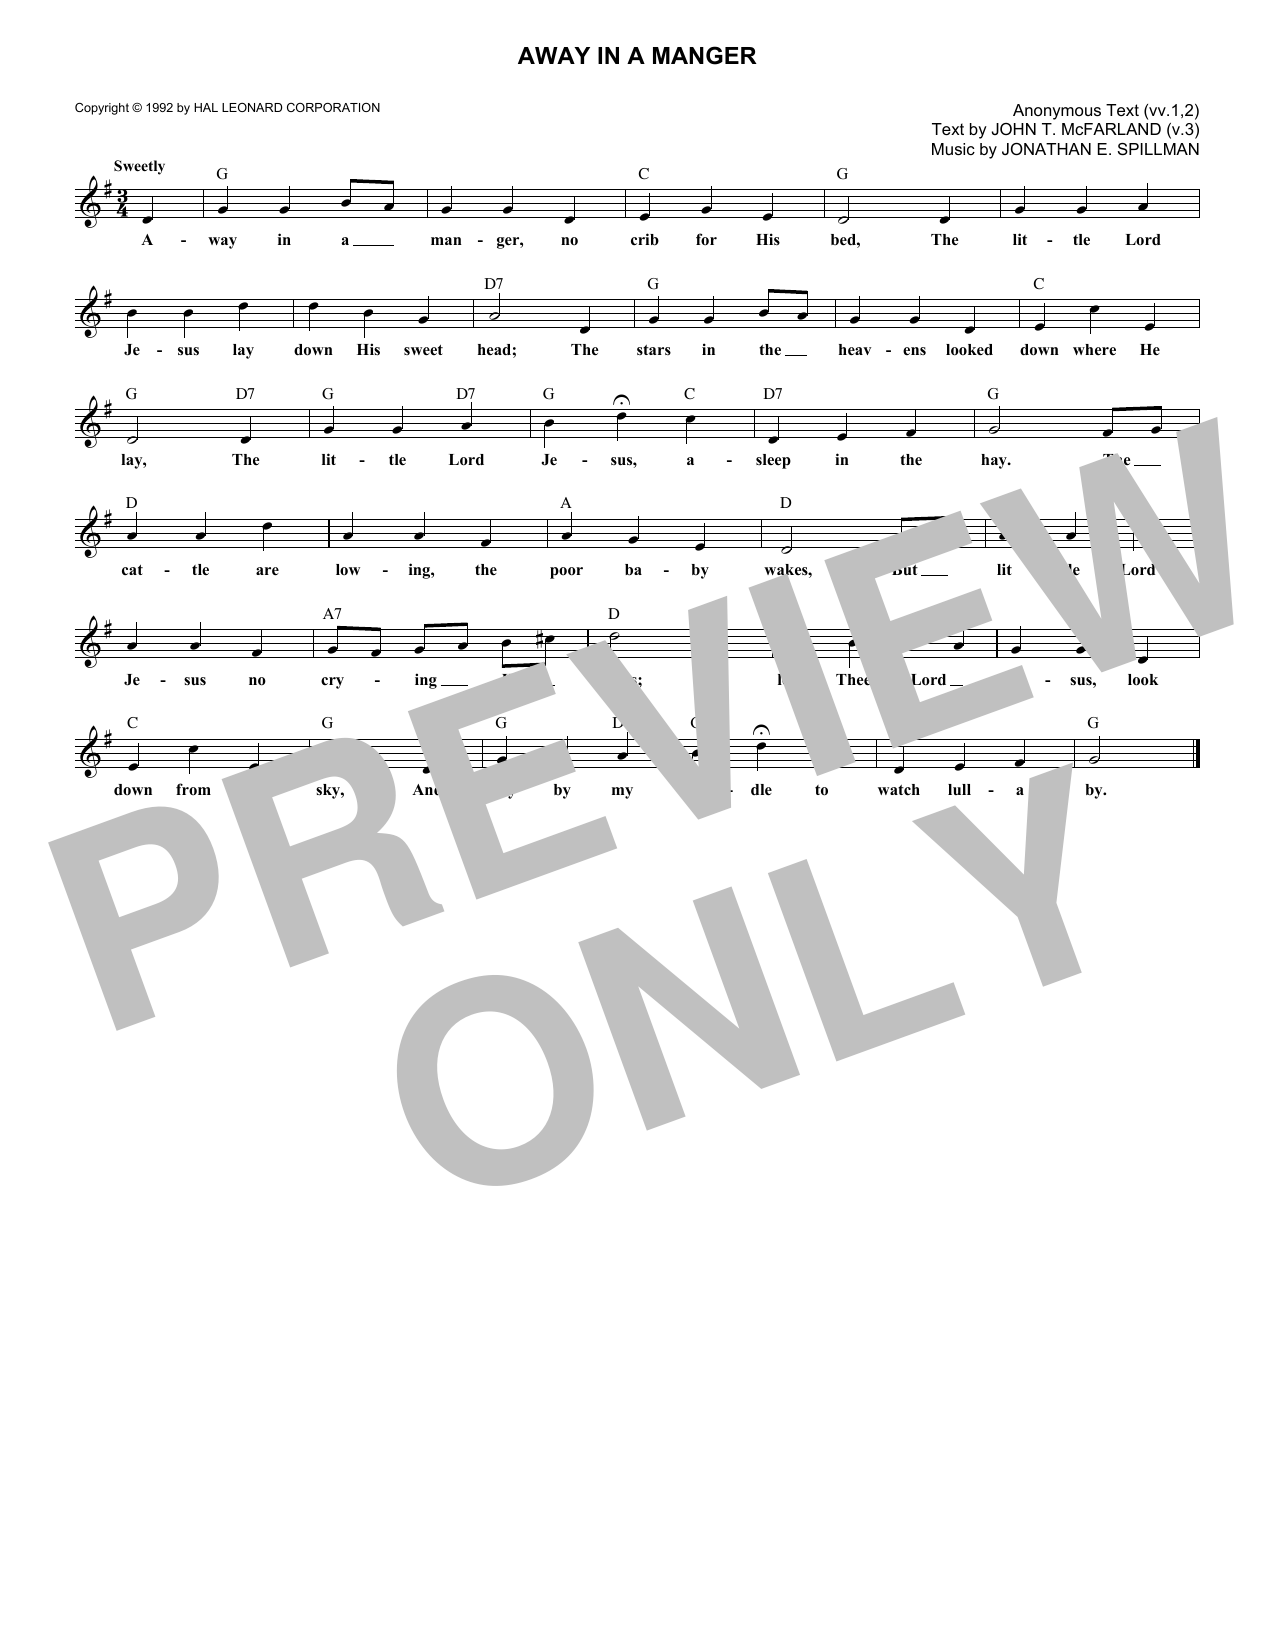 picture relating to Lyrics to Away in a Manger Printable named John T. McFarland Absent Inside A Manger Sheet Audio Notes, Chords Down load Printable Melody Line, Lyrics Chords - SKU: 181639